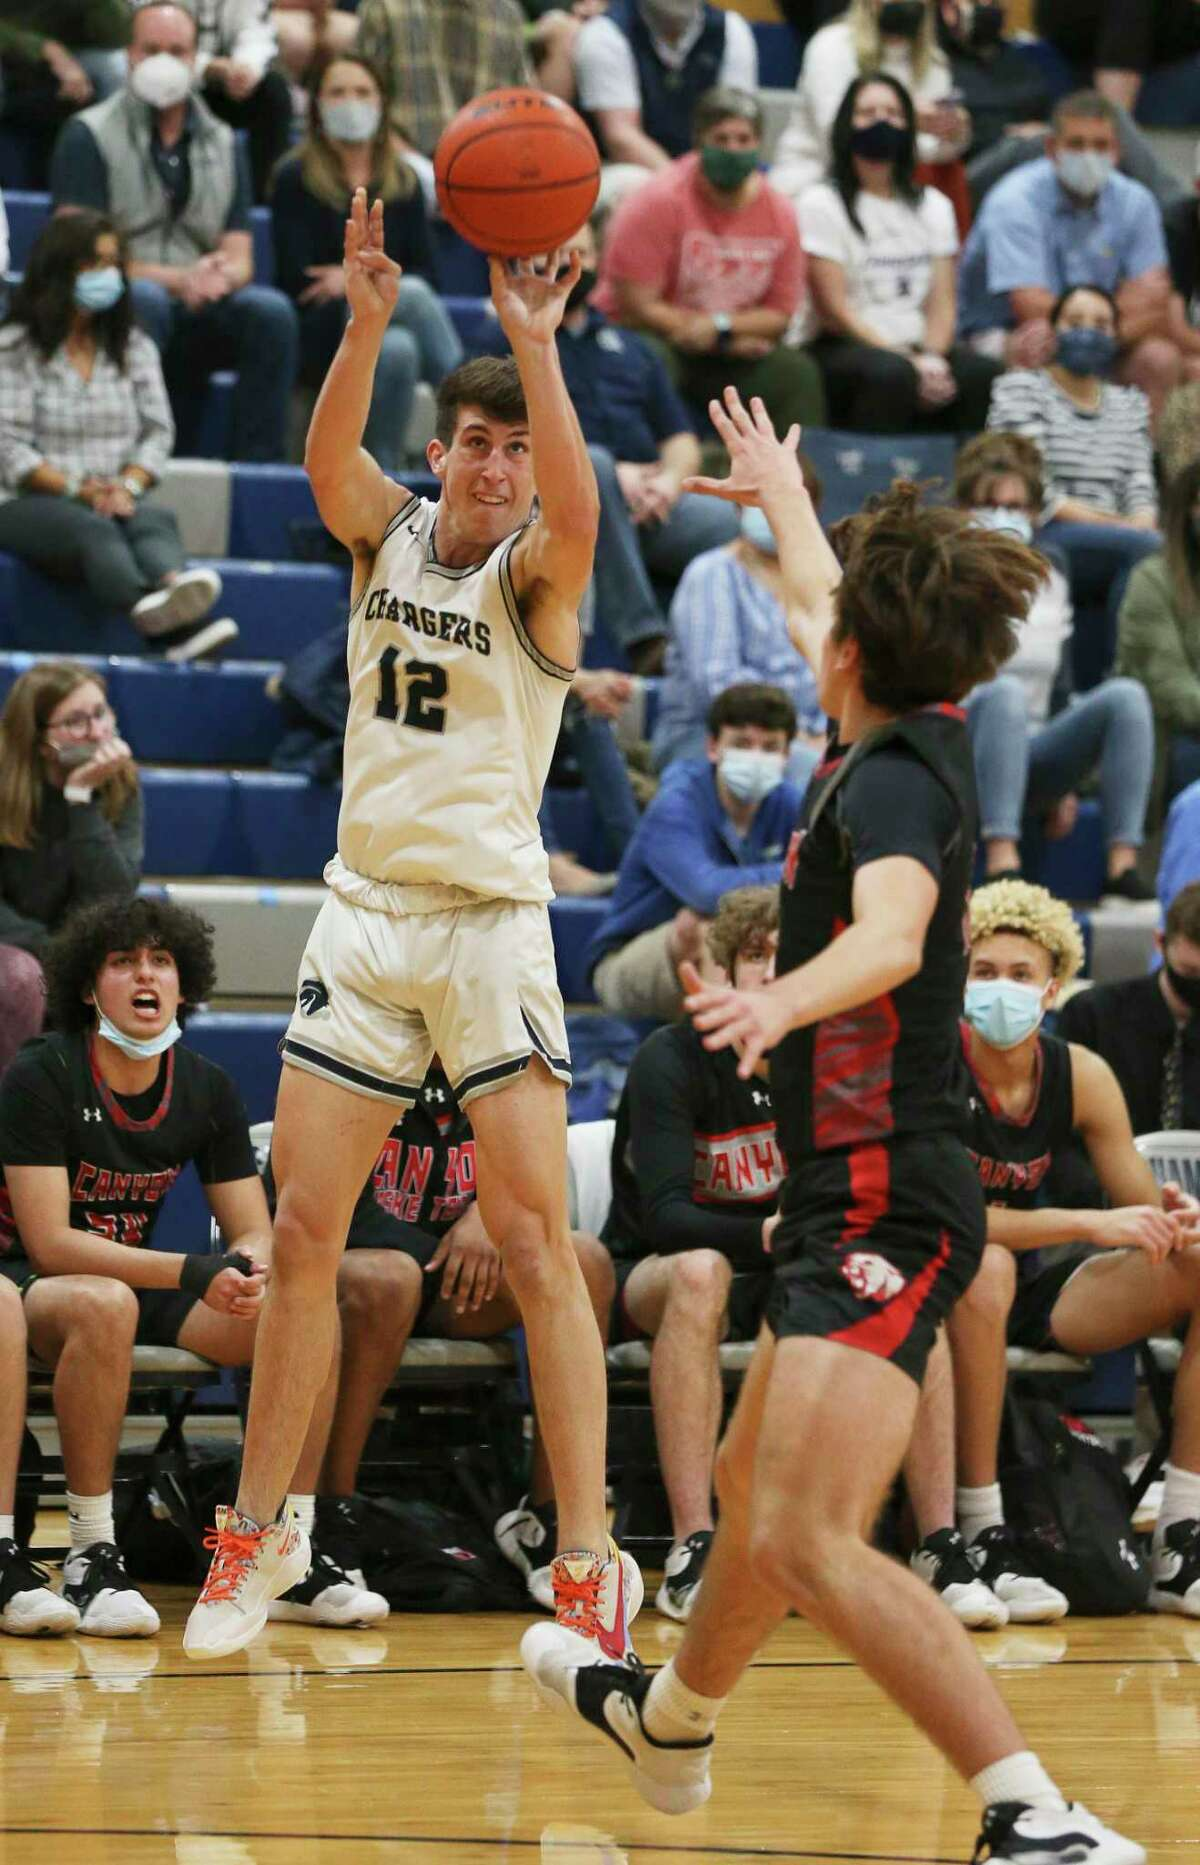 Boerne Champion's Braxton Burdick (12) lines up a three-pointer against New Braunfels Canyon's Mack Bassett (11) in boys basketball in Boerne on Tuesday, Feb. 9, 2021. Boerne Champion defeated NB Canyon, 66-25.